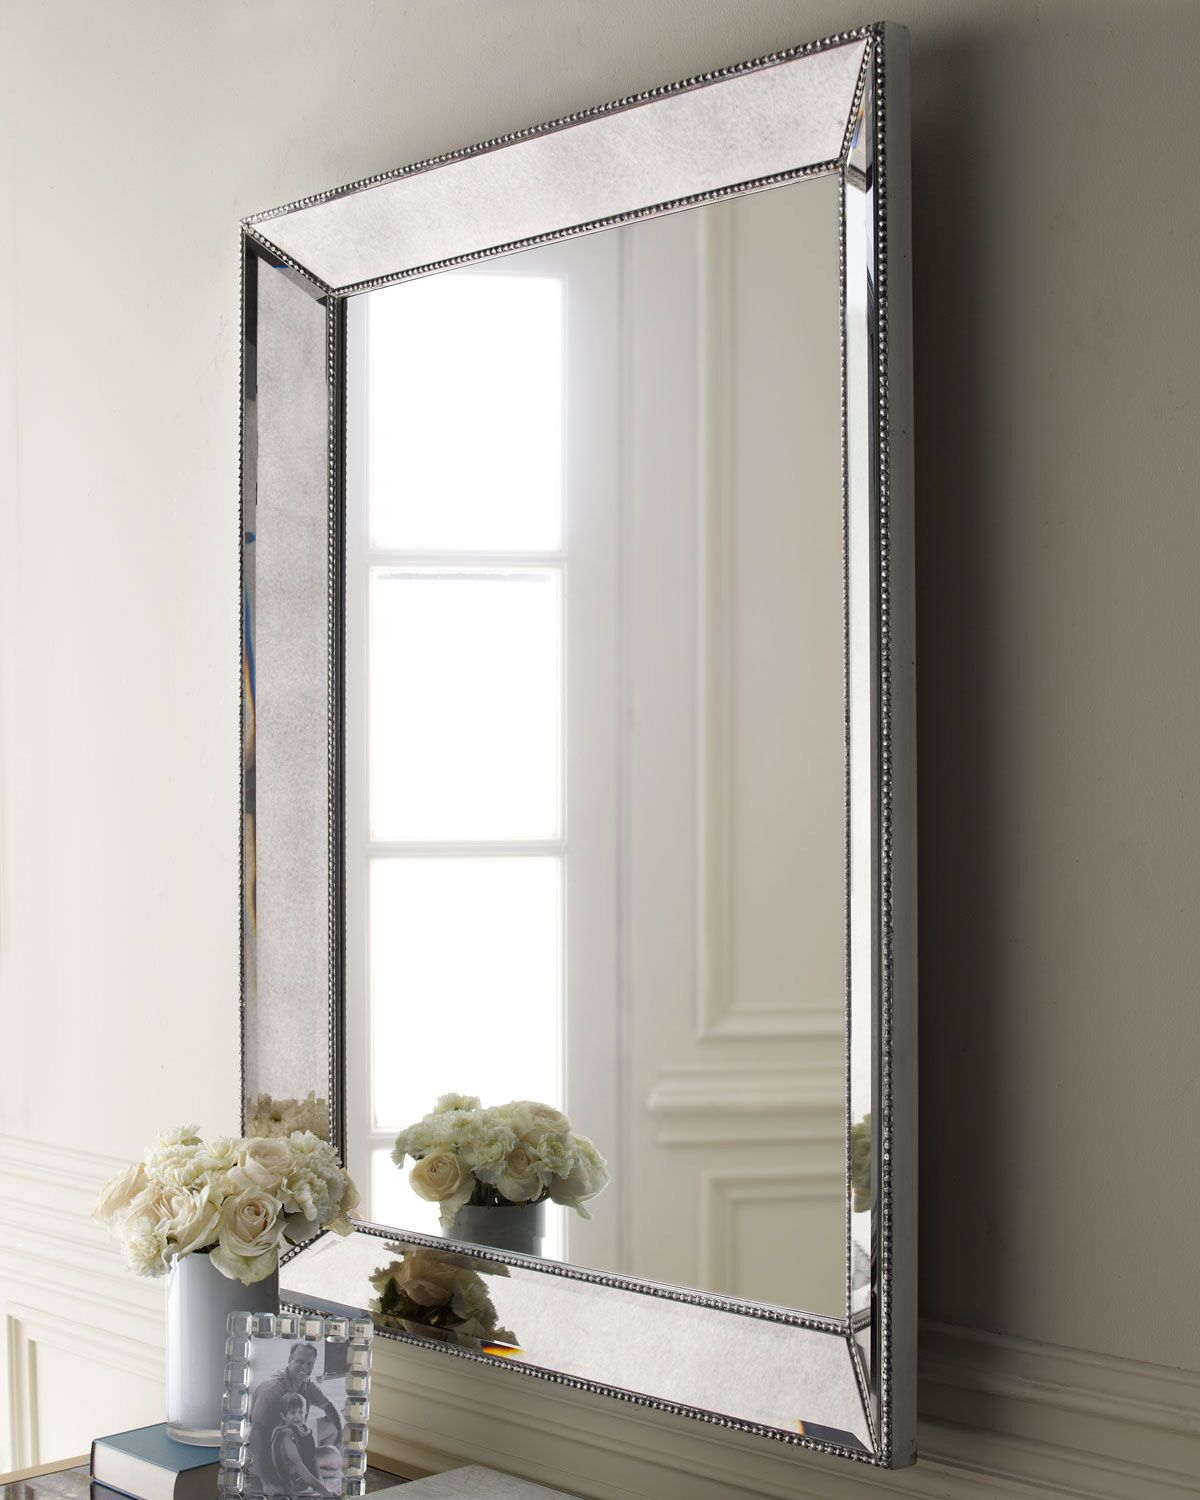 made of select hardwoods and mirrored glass beaded frame with antiqued silver finish can hang vertically or horizontally x x imported weight 68 lbs